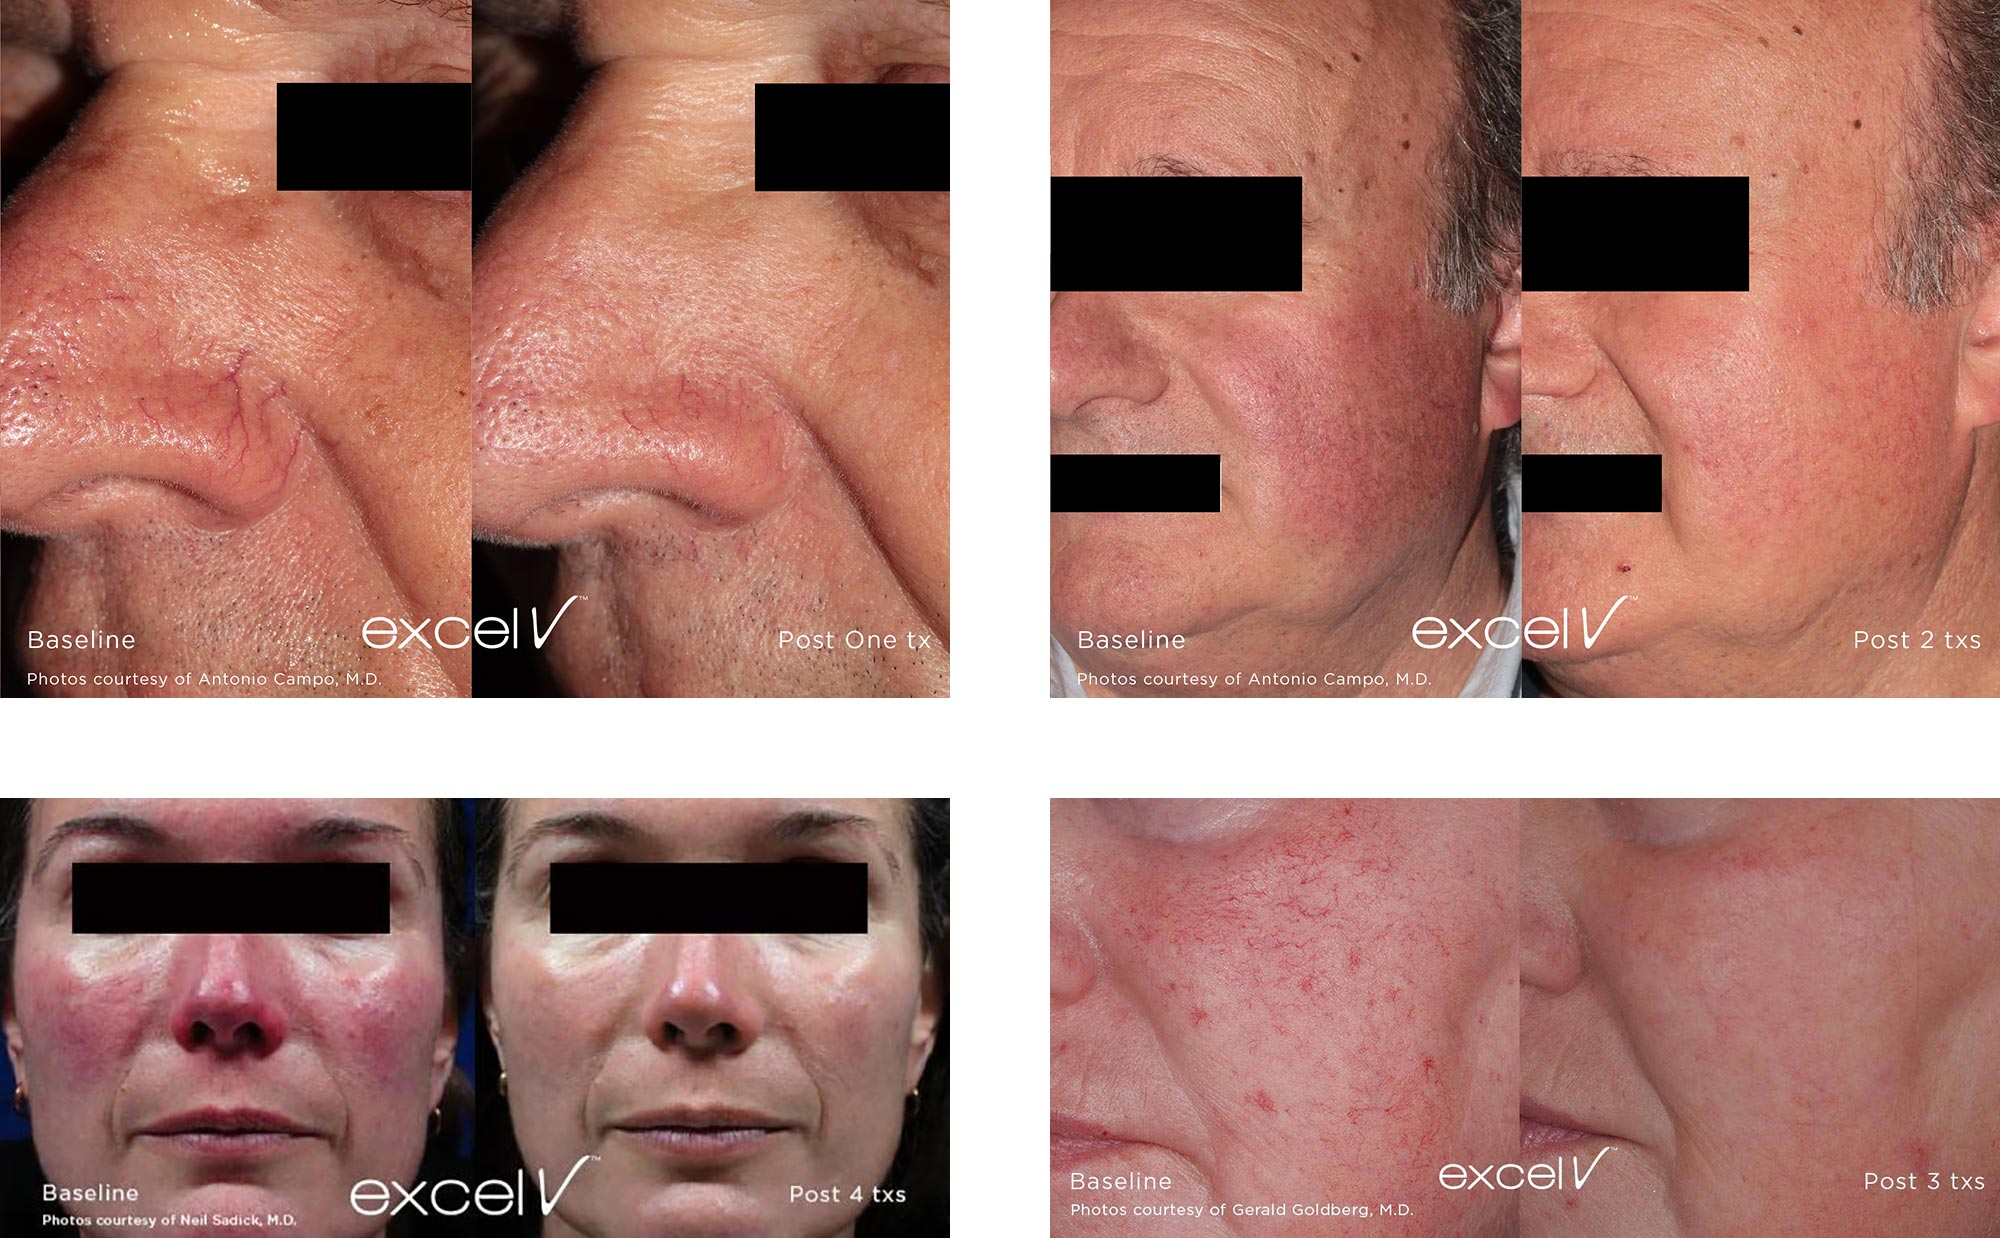 Before & After Photos of Excel V Treatments of Facial Veins